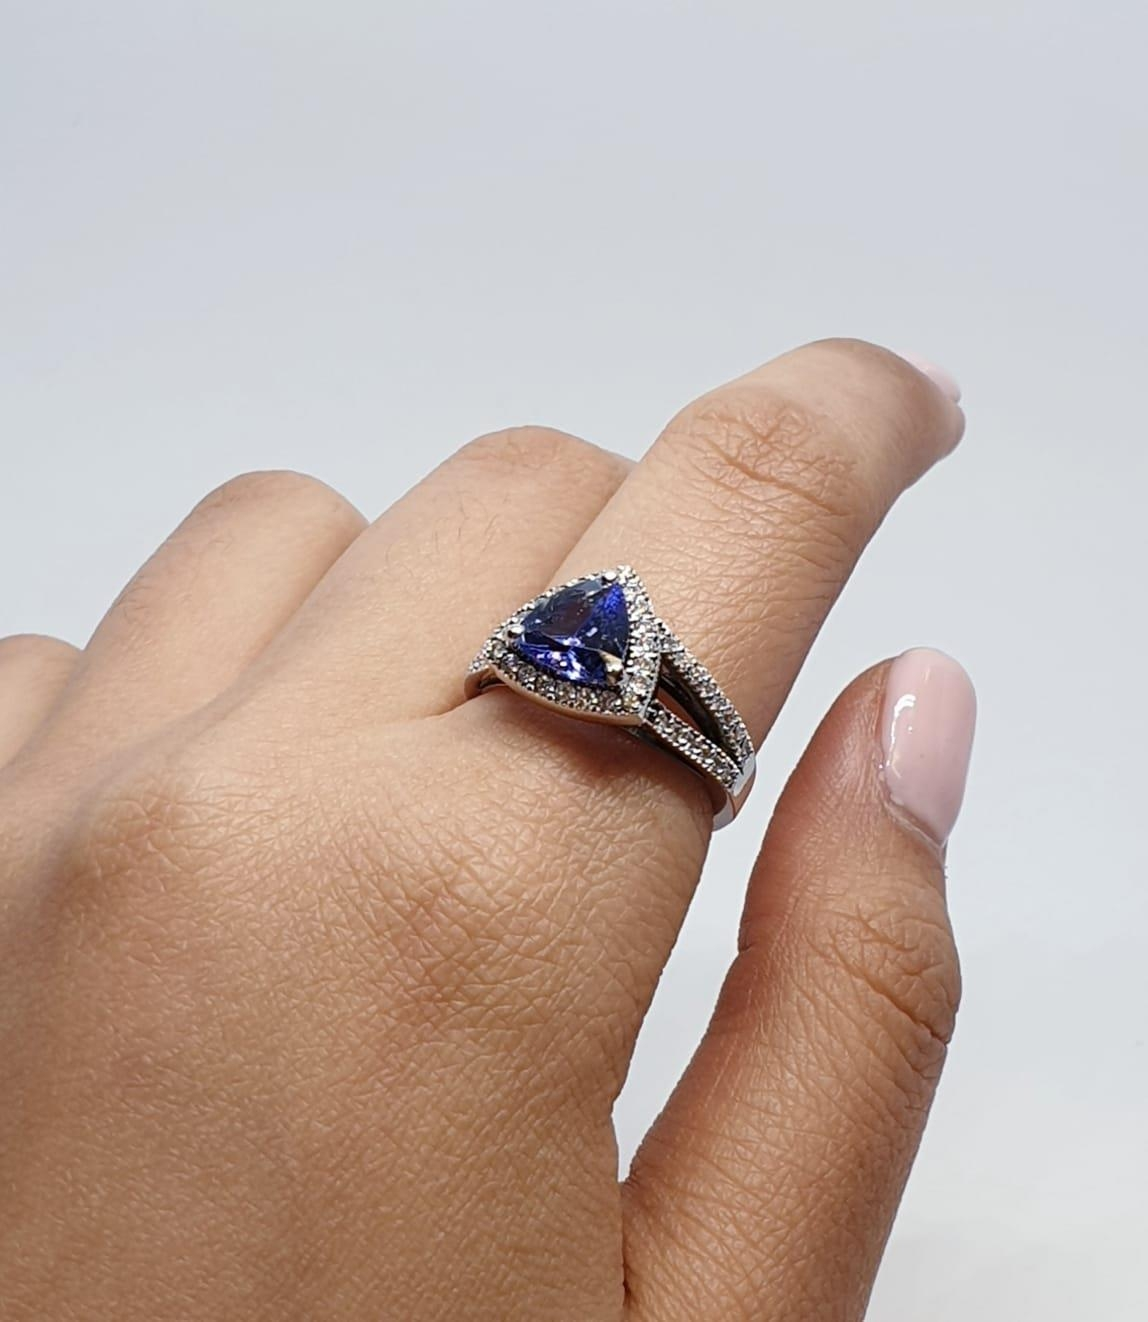 18CT WHITE GOLD RING WITH TRIANGULAR TANZANITE CENTRE AND DIAMONDS ON SHOULDERS, WEIGHT 7G AND - Image 8 of 10